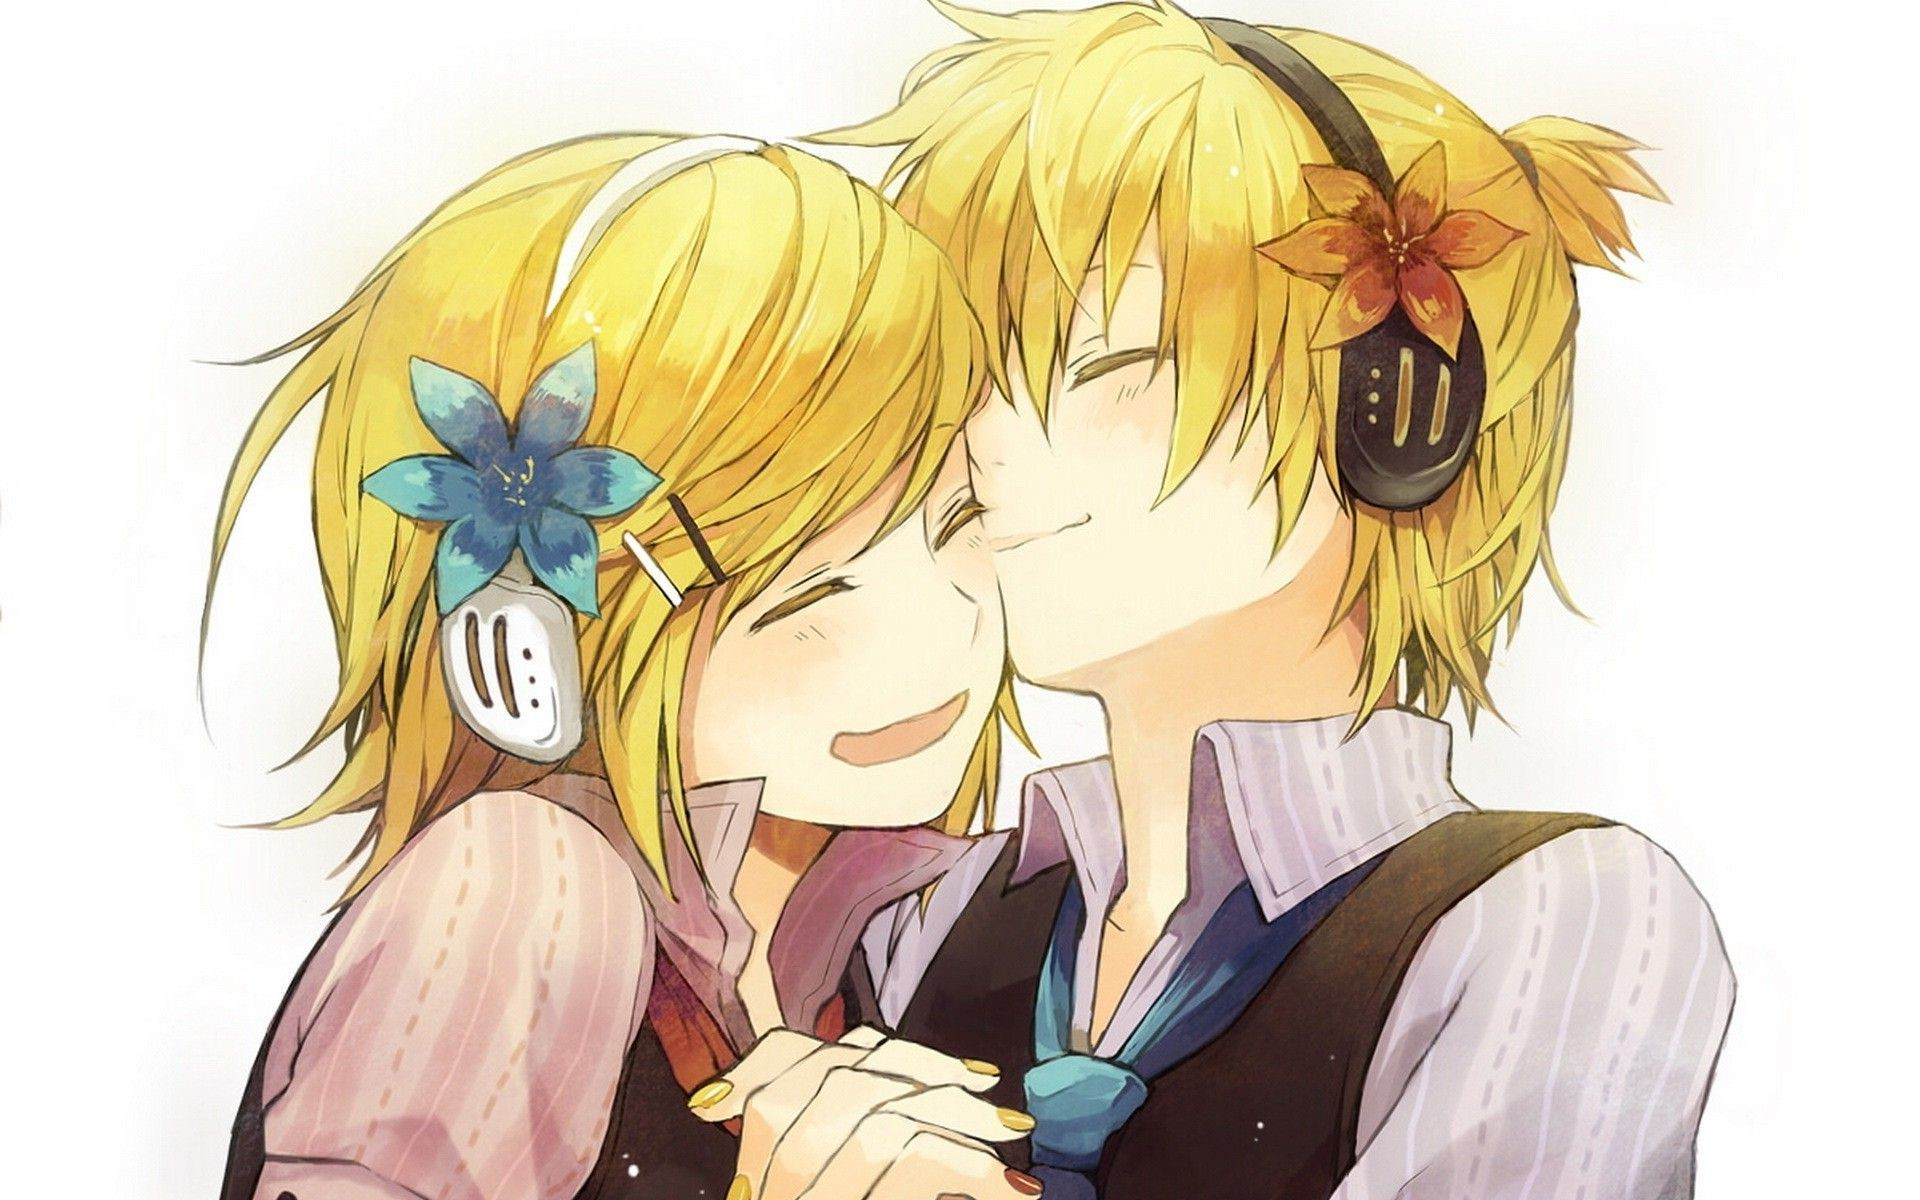 Res: 1920x1200, ... Len and Kagamine Rin - Vocaloid HD Wallpaper